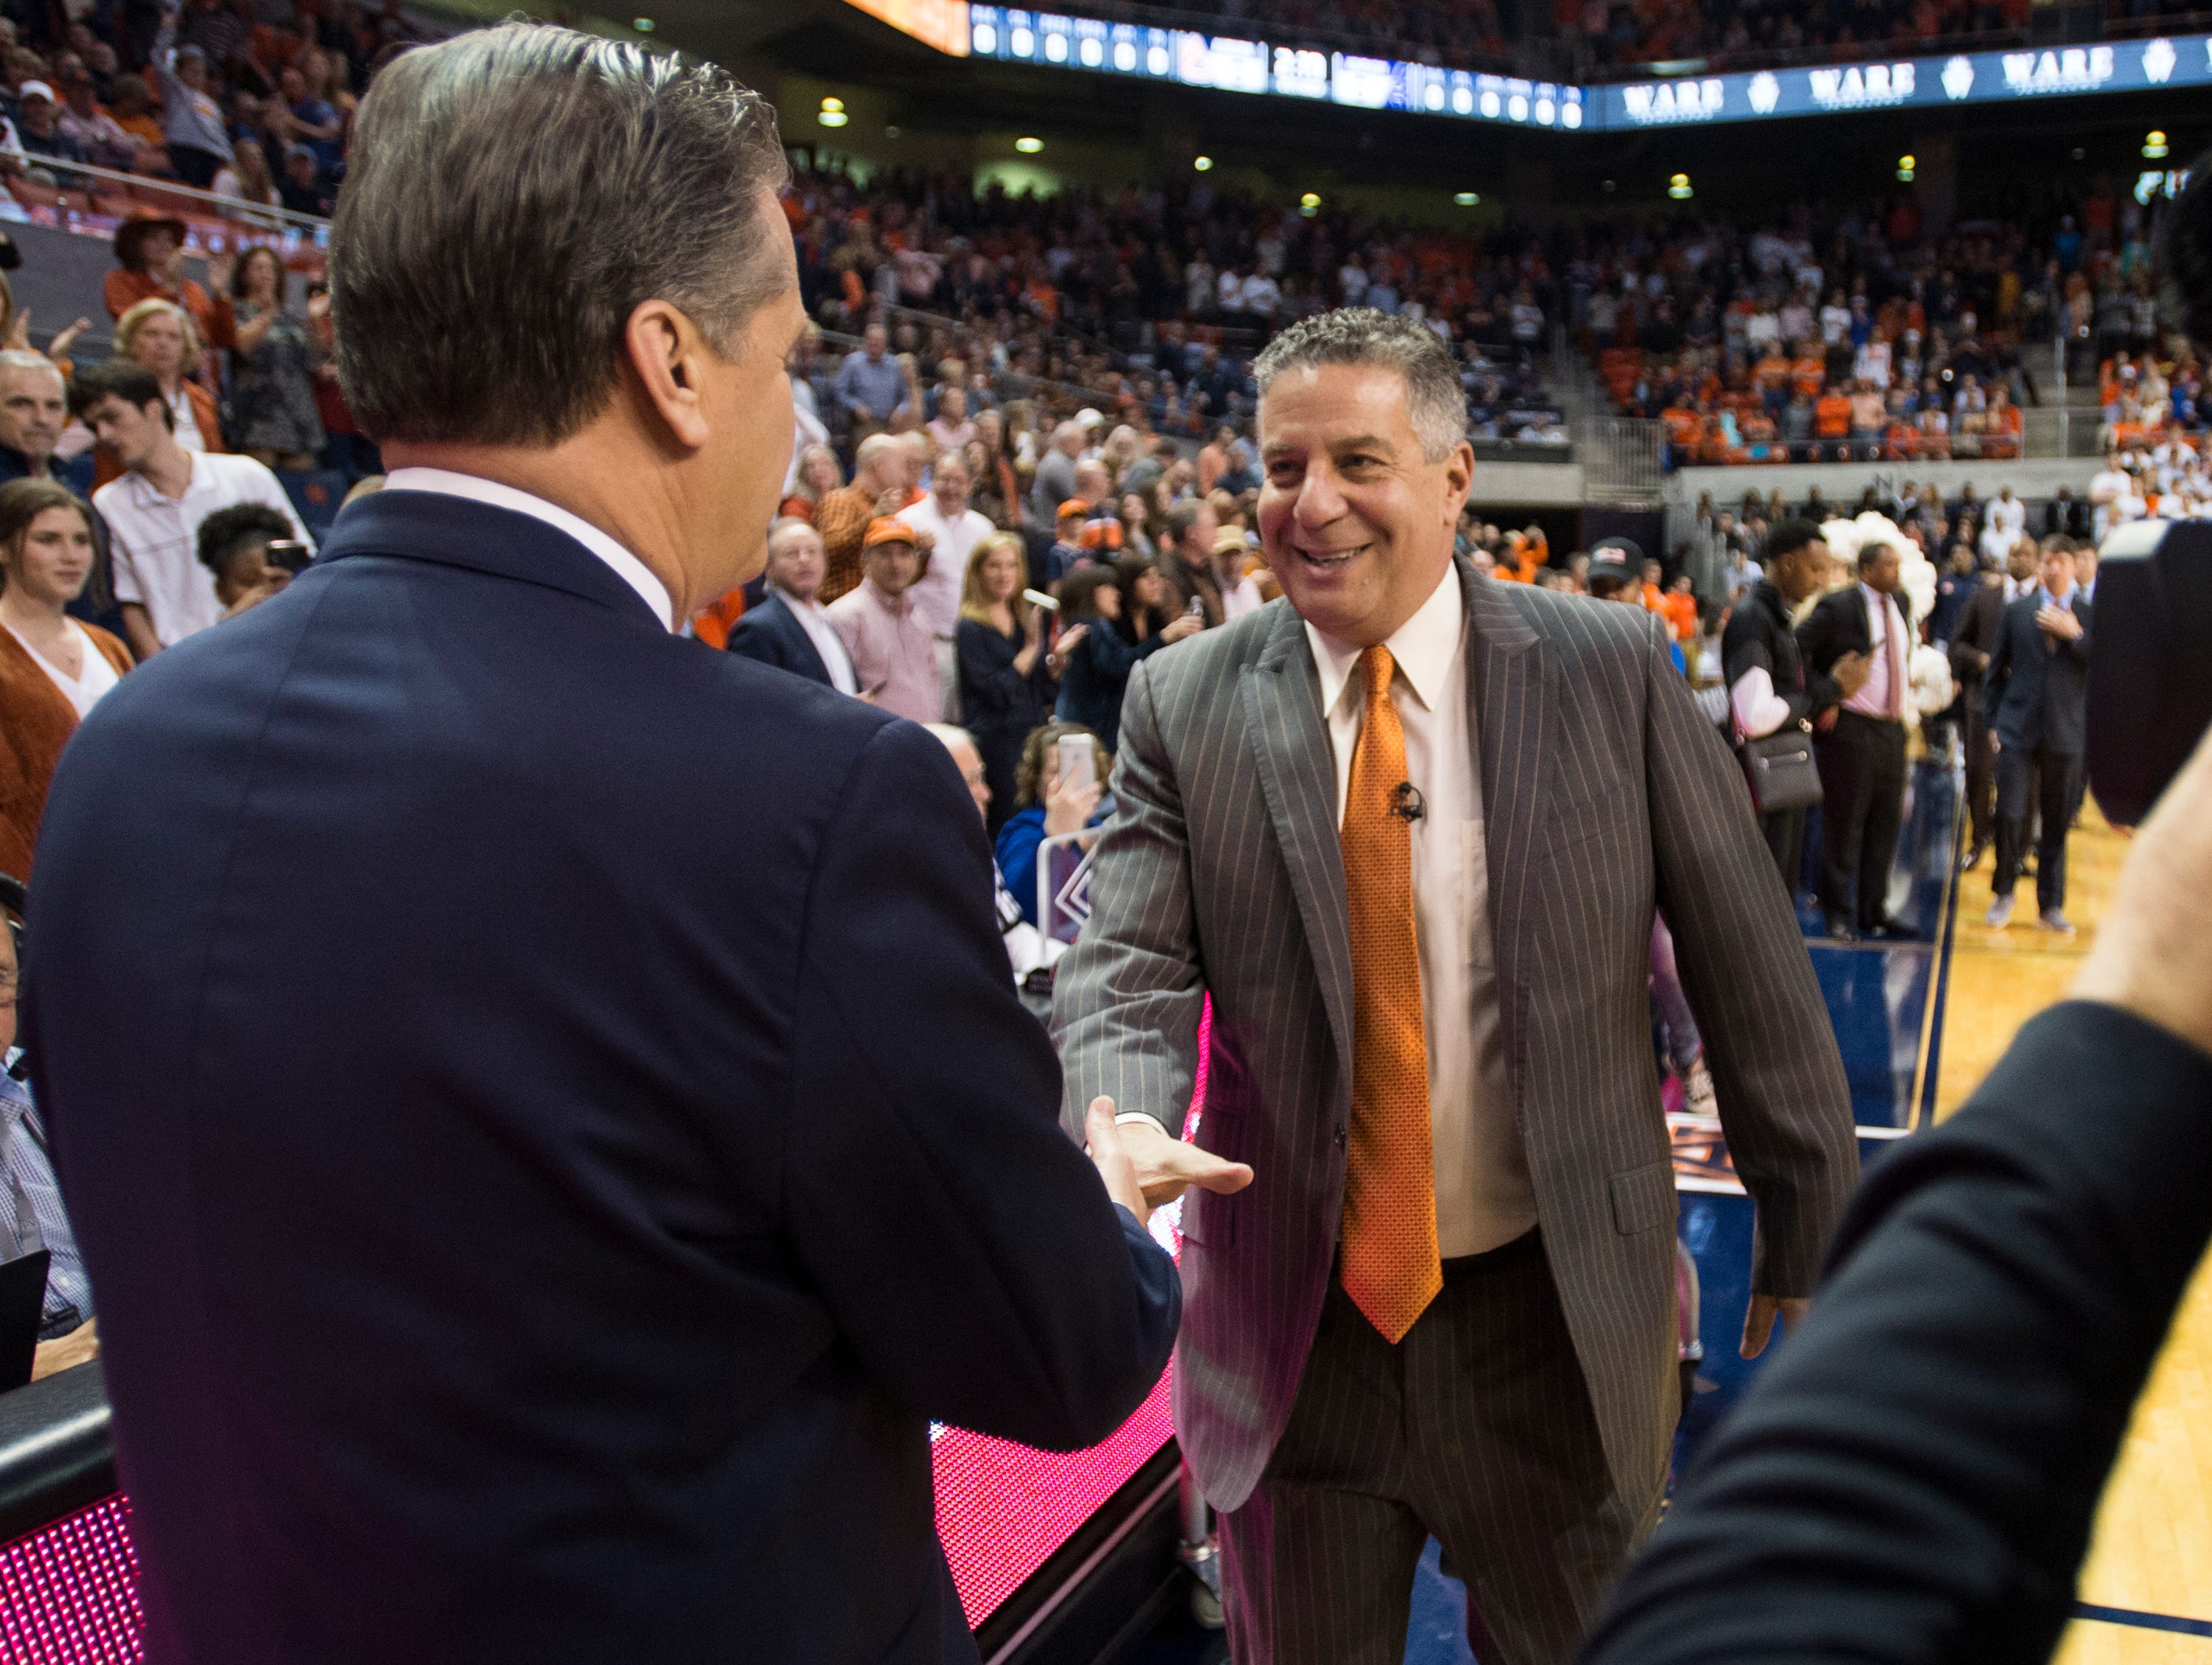 Kentucky head coach John Calipari, left, and Auburn head coach Bruce Pearl meet before the game at Auburn Arena in Auburn, Ala., on Saturday, Jan. 19, 2019. Kentucky leads Auburn 35-27 at halftime.